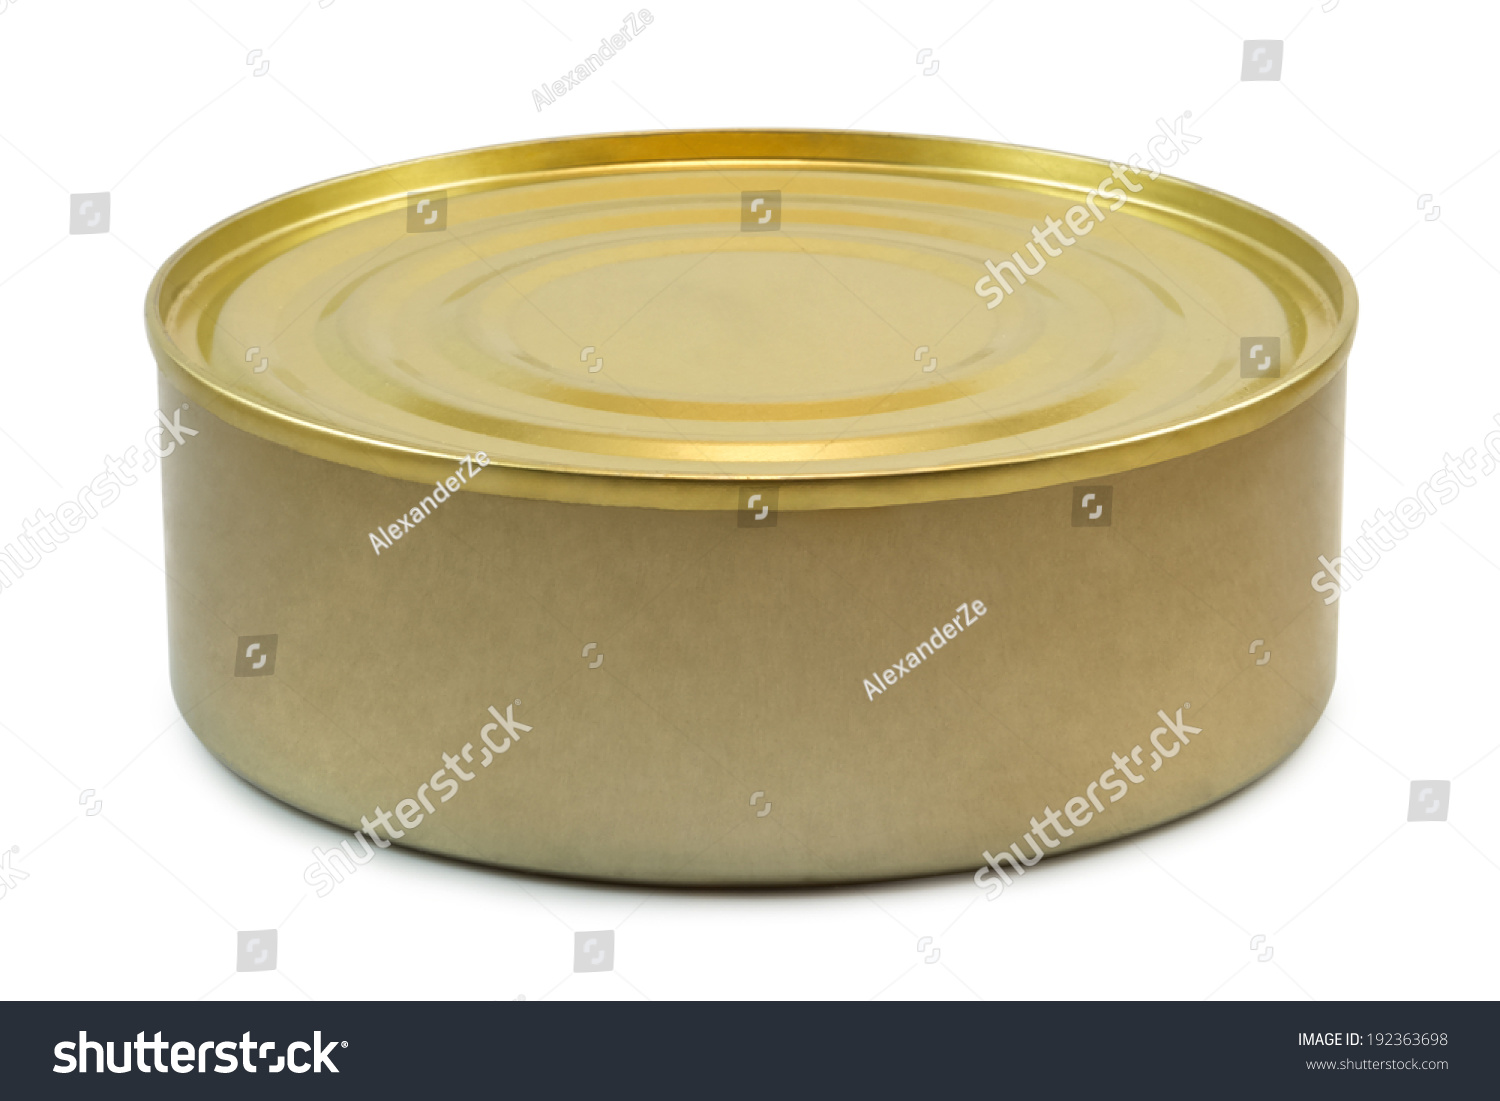 Small tin can isolated on white background